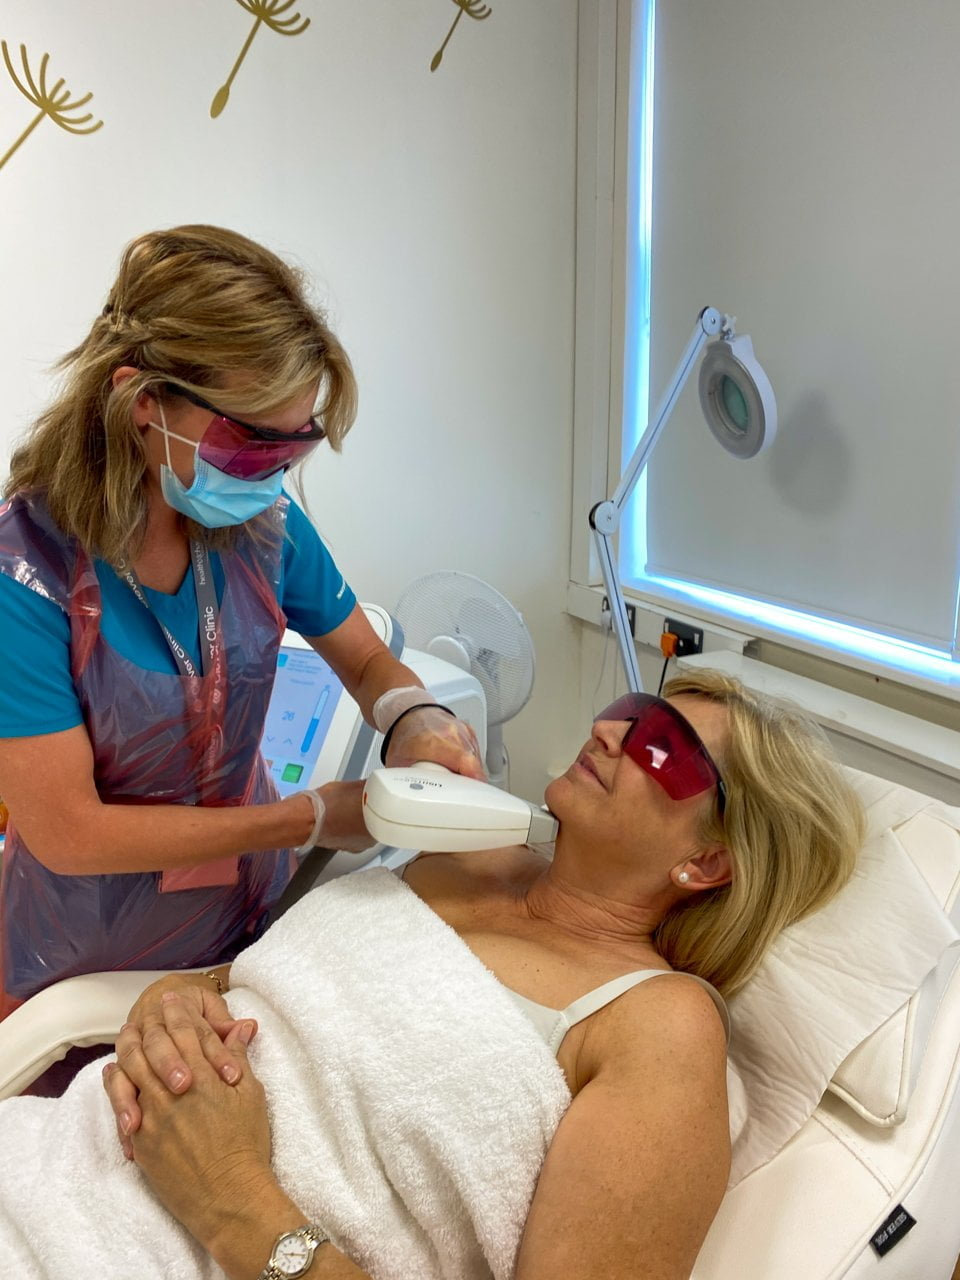 Laser hair removal during COVID